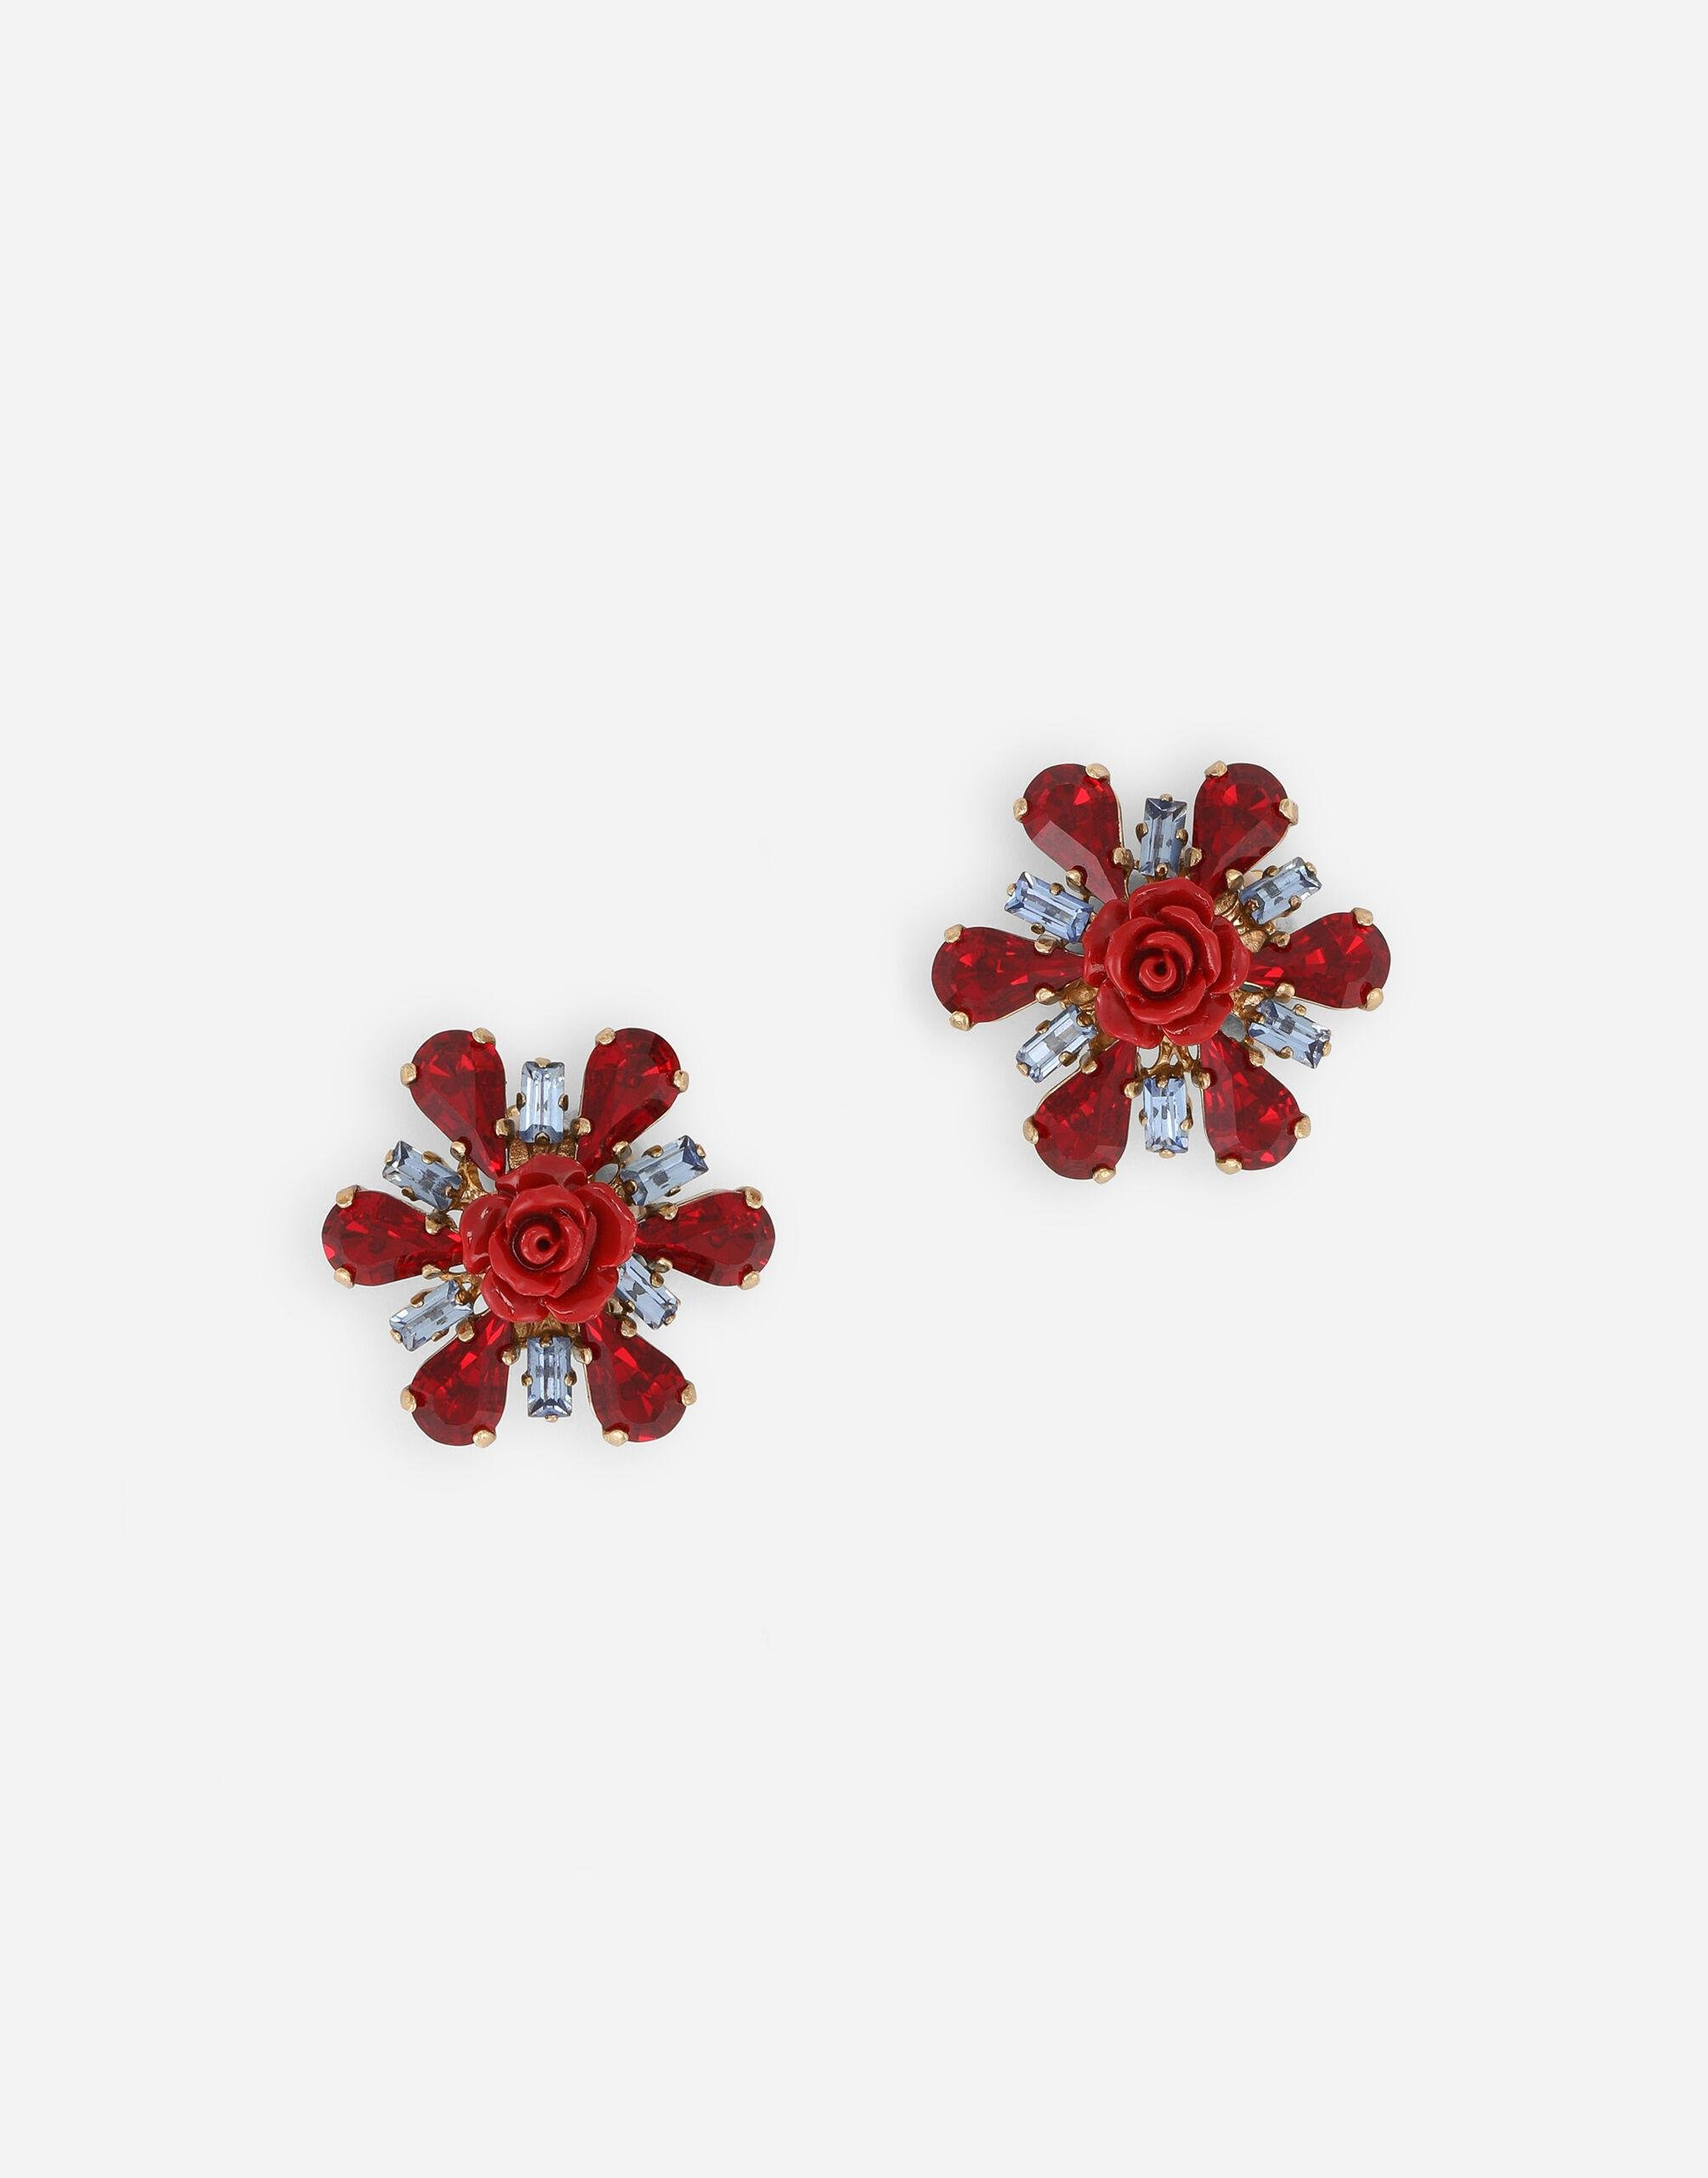 Clip-on earrings with rhinestone accents